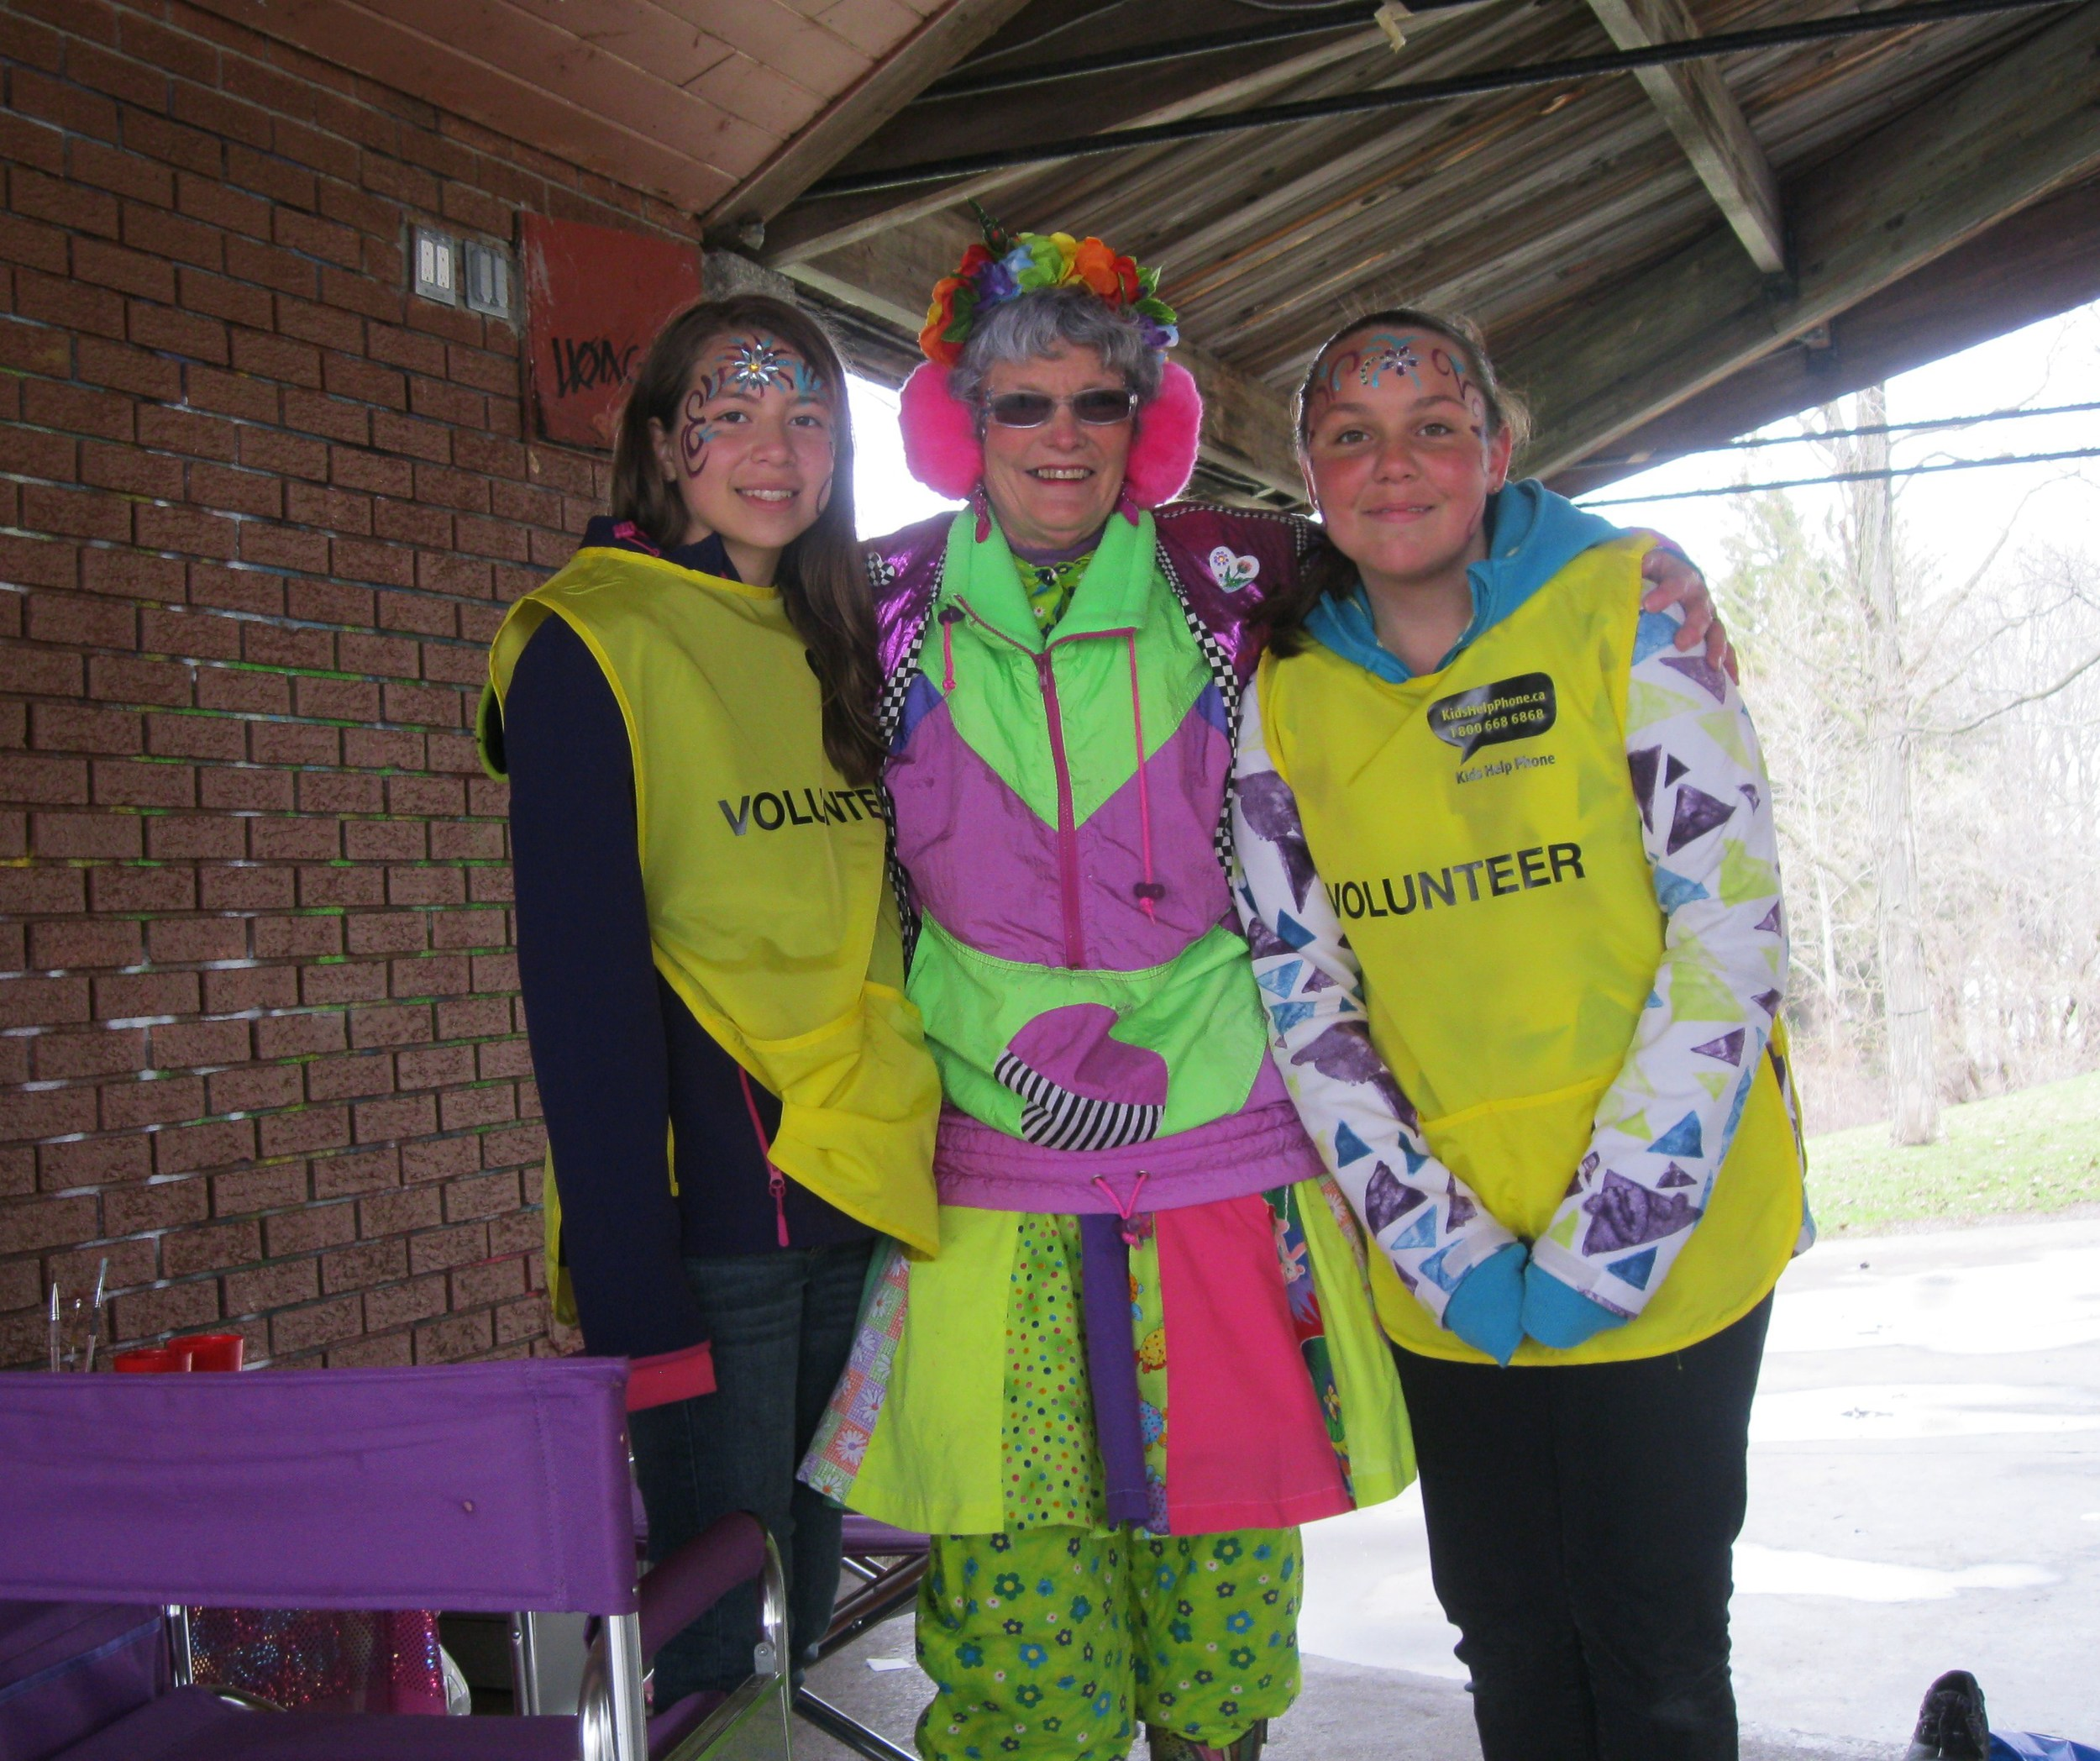 Sharon from Checkers Entertainment Services facepaints two high school walk volunteers